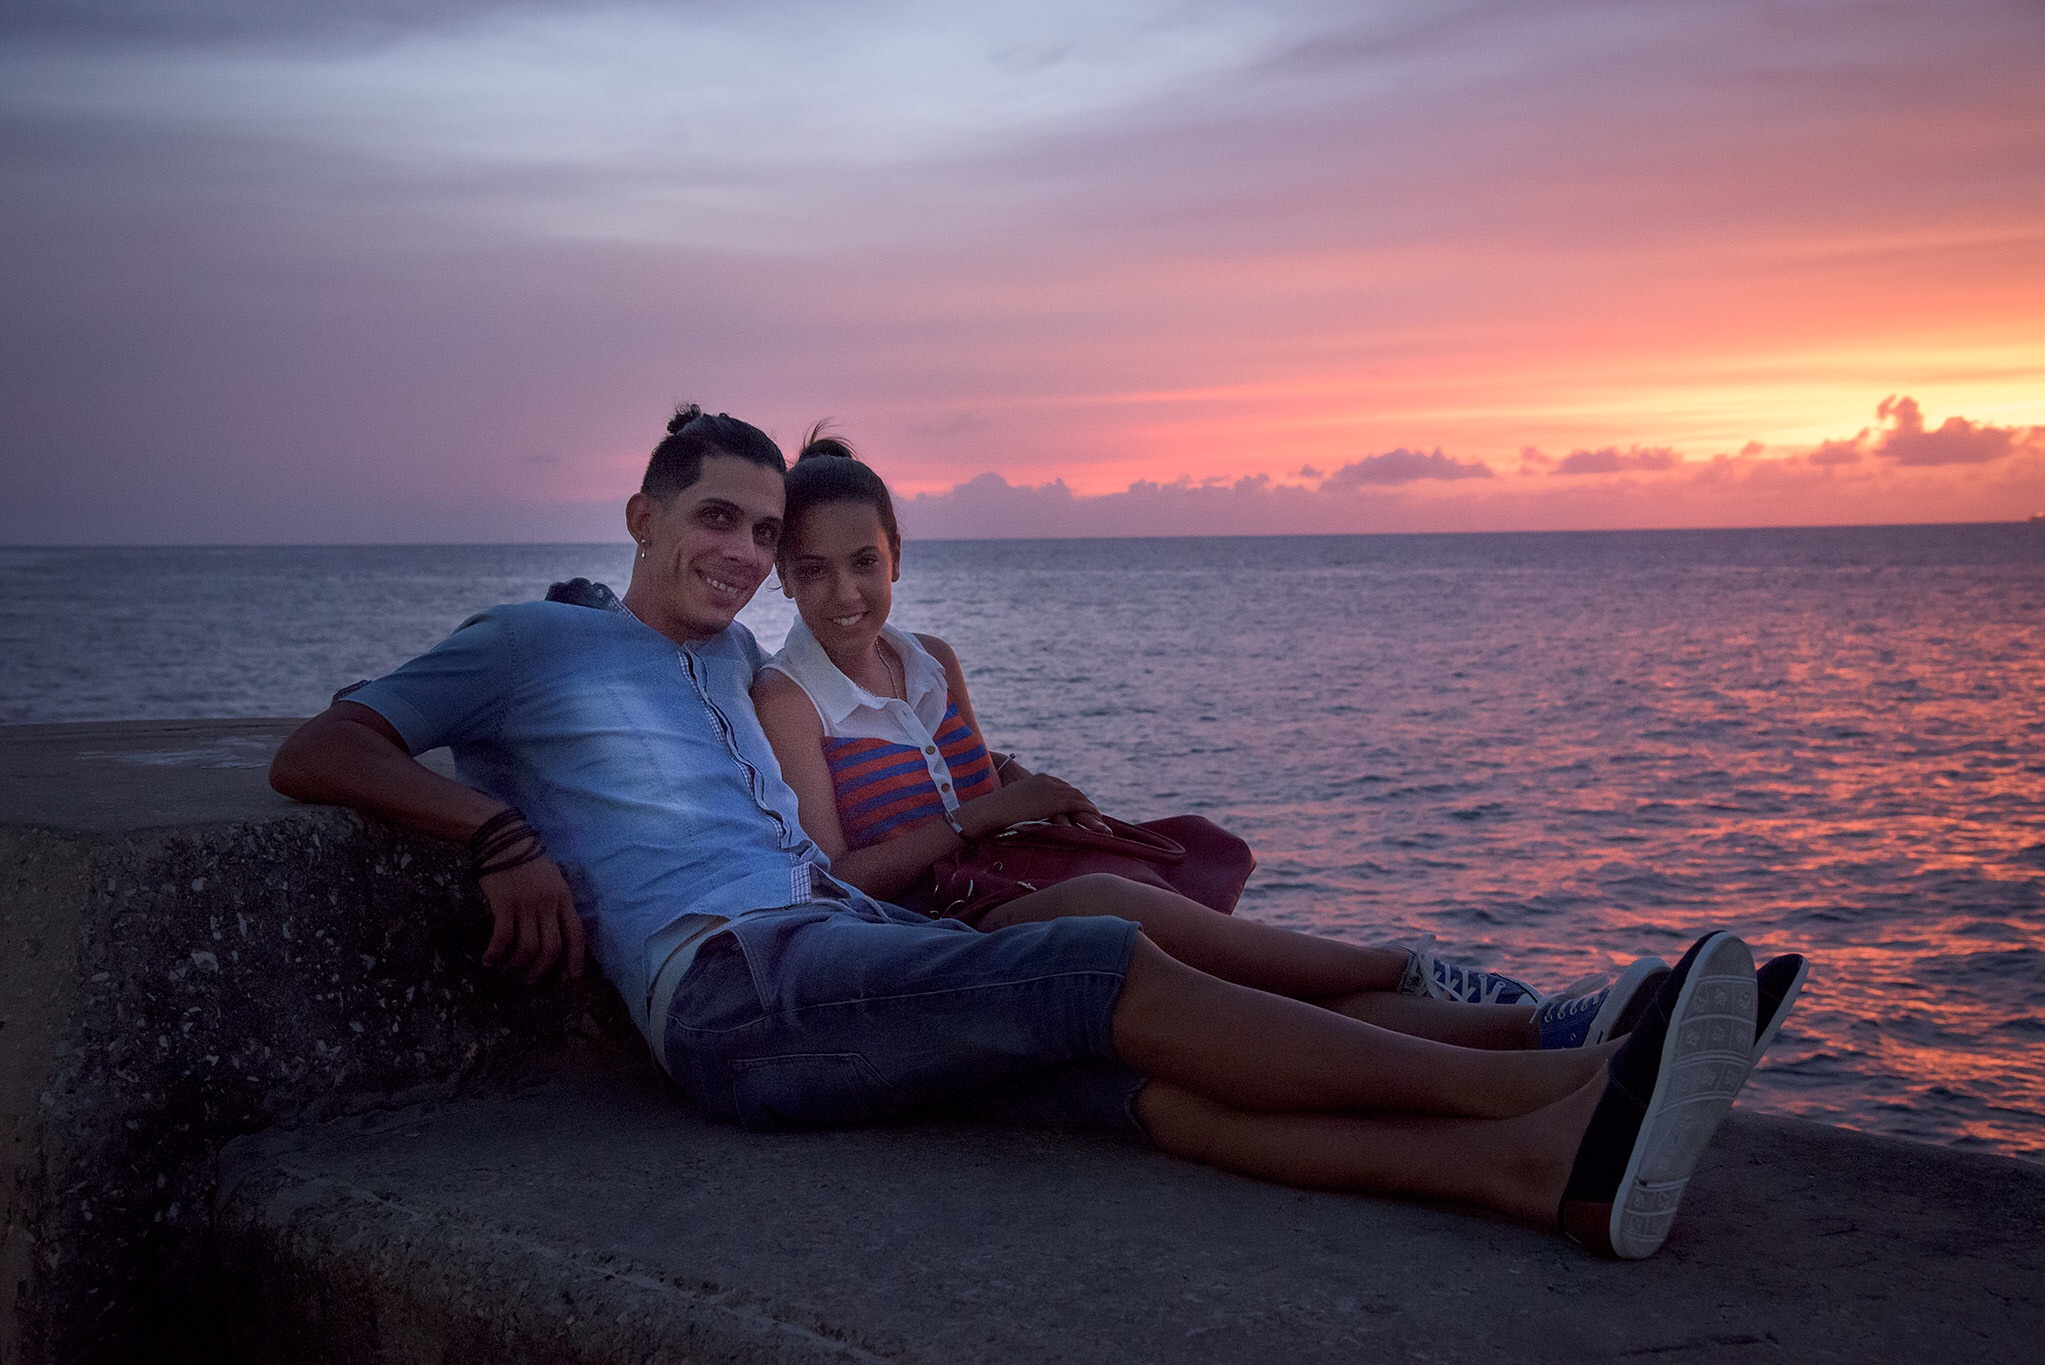 One of the many lovely couples we interacted with while strolling along the Malecon. Almost all young Cubans we met were excited to meet people from the United States and discuss what the future might hold.